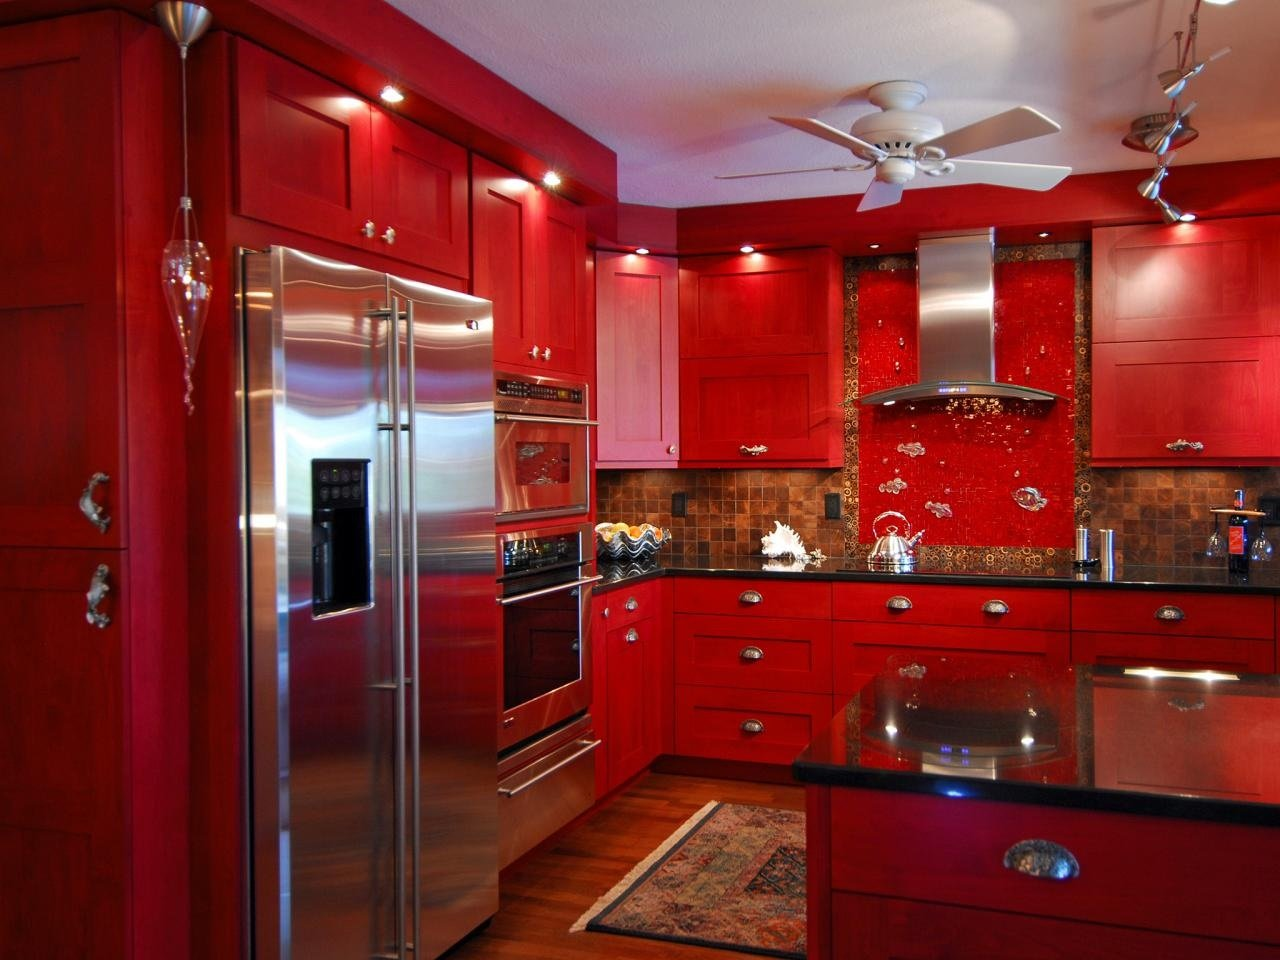 red kitchen color image